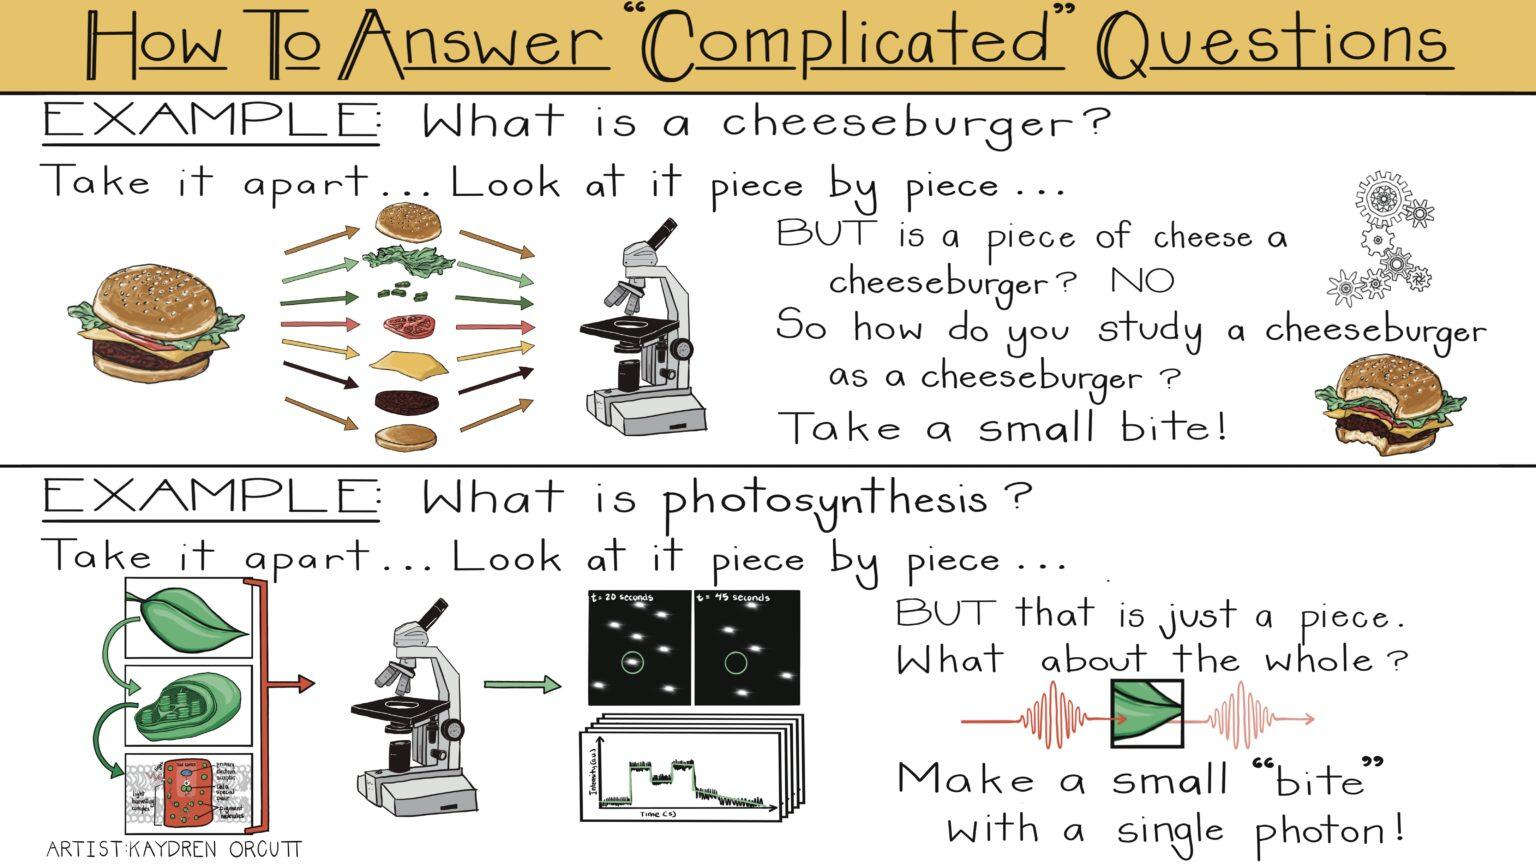 Illustration on how to answer complicated questions